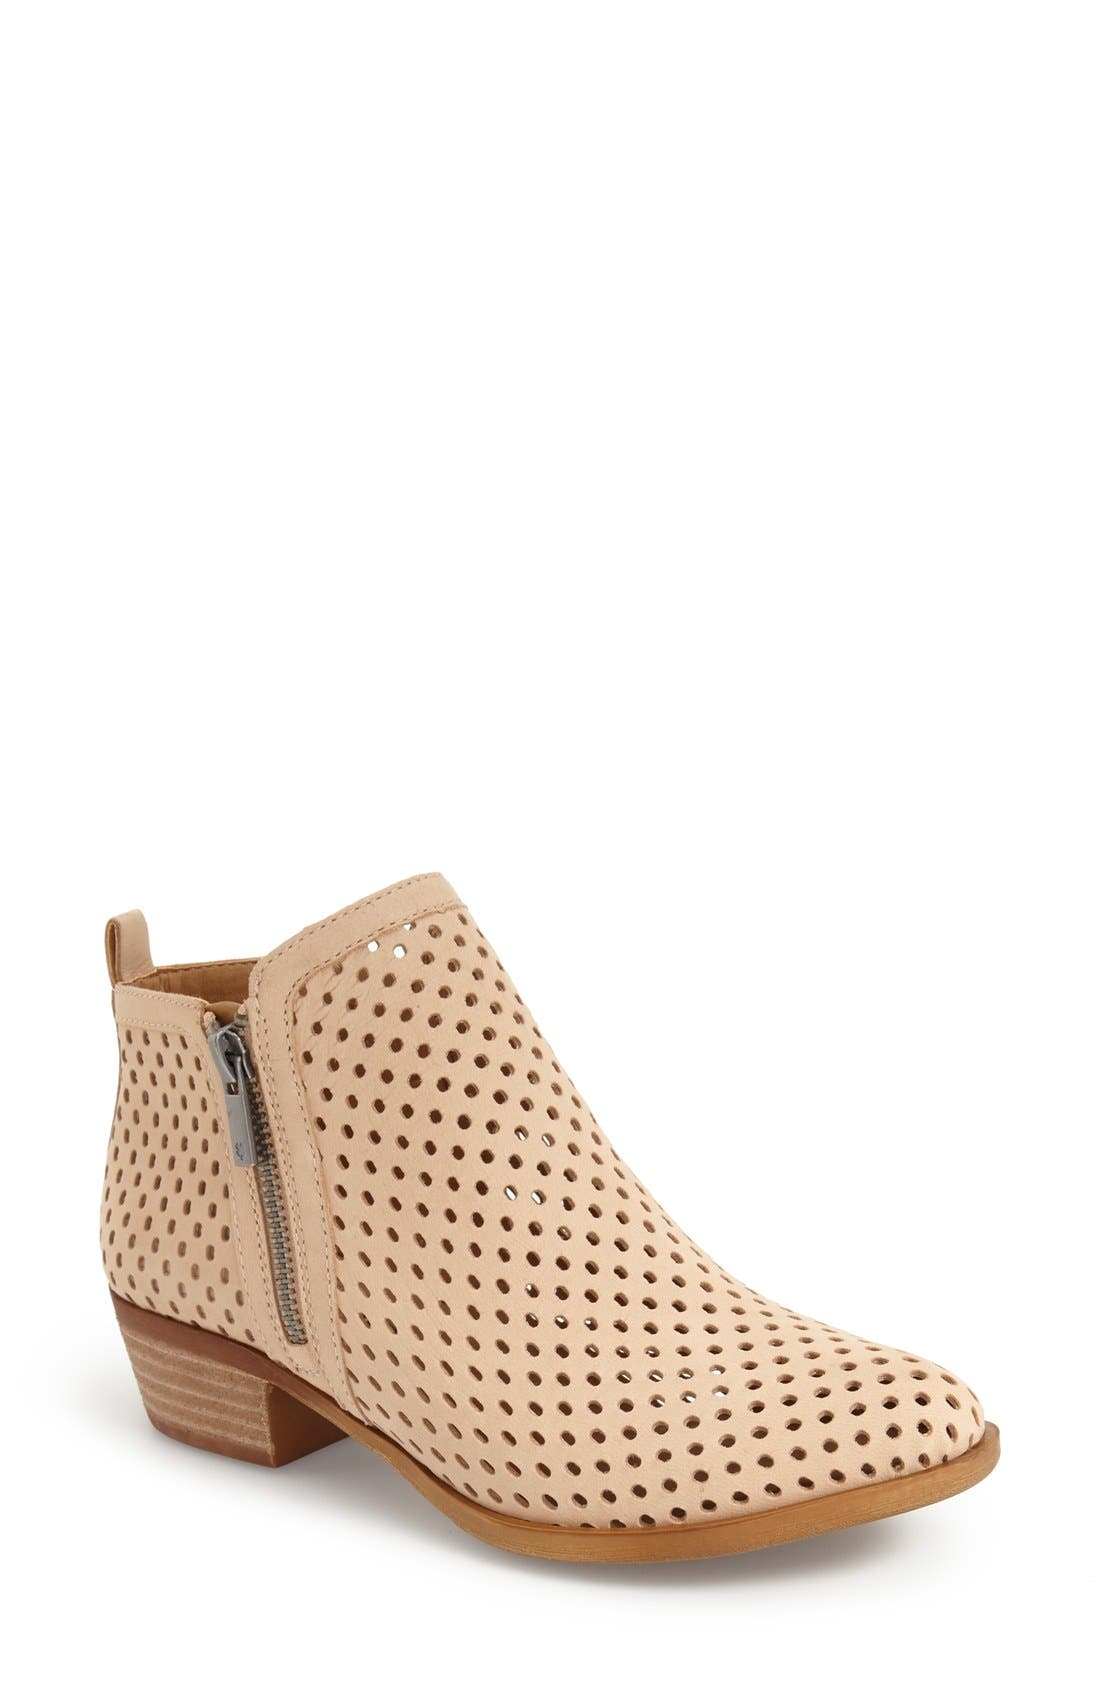 Alternate Image 1 Selected - Lucky Brand 'Basel' Perforated Bootie (Women)